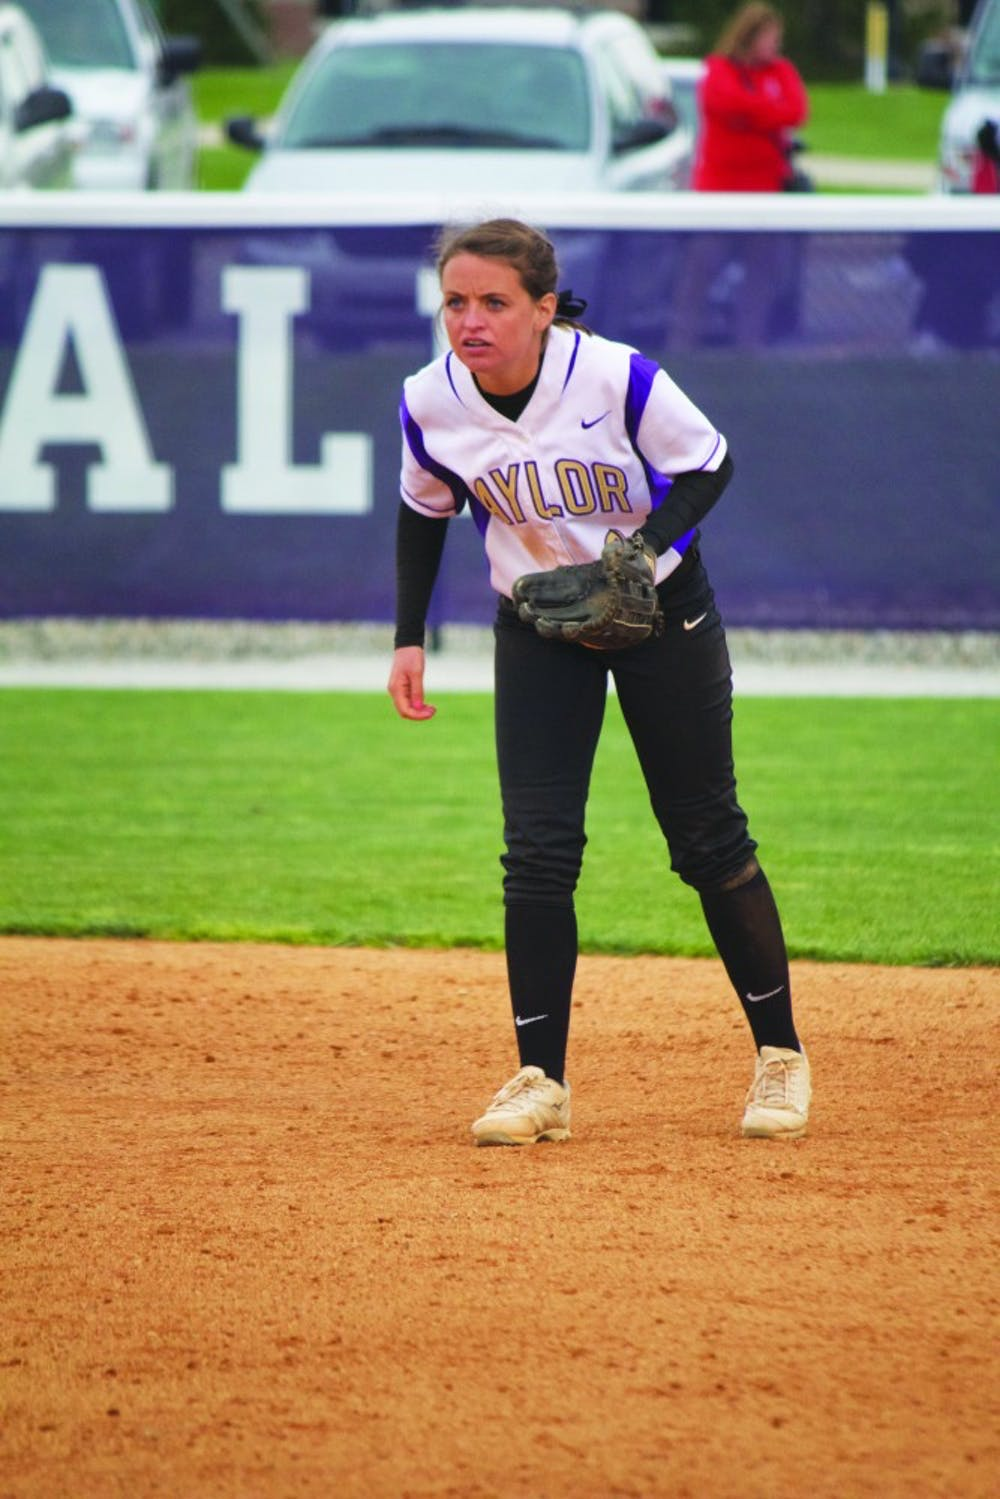 Softball ends six day drought; ready for more games on the diamond